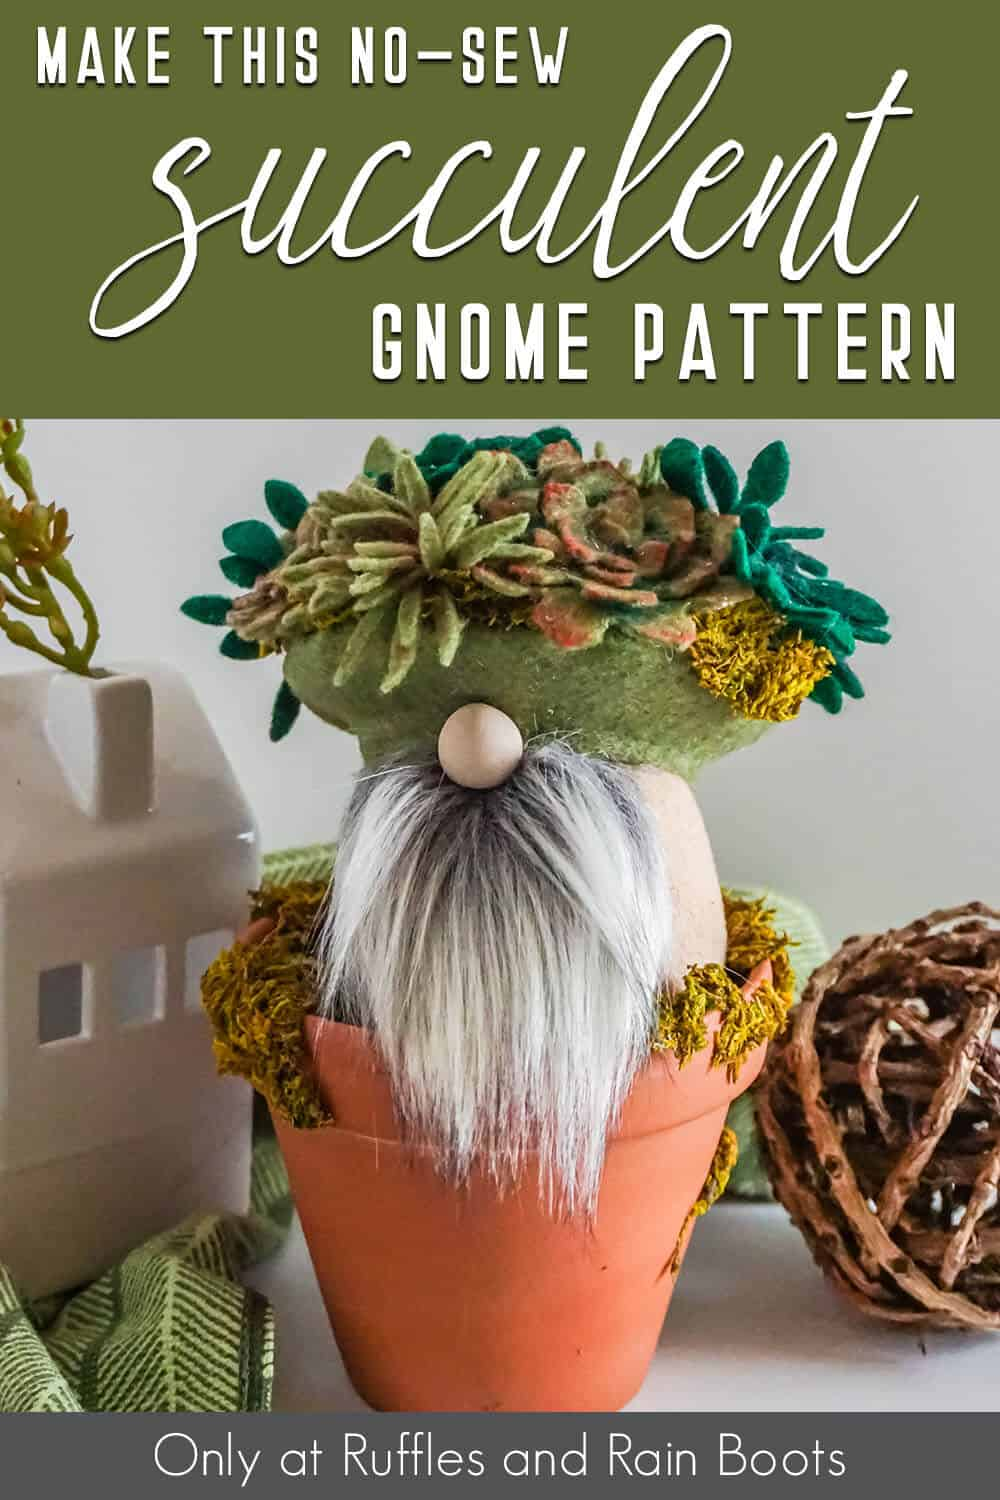 succulent hat gnome with text which reads make this no-sew succulent gnome pattern